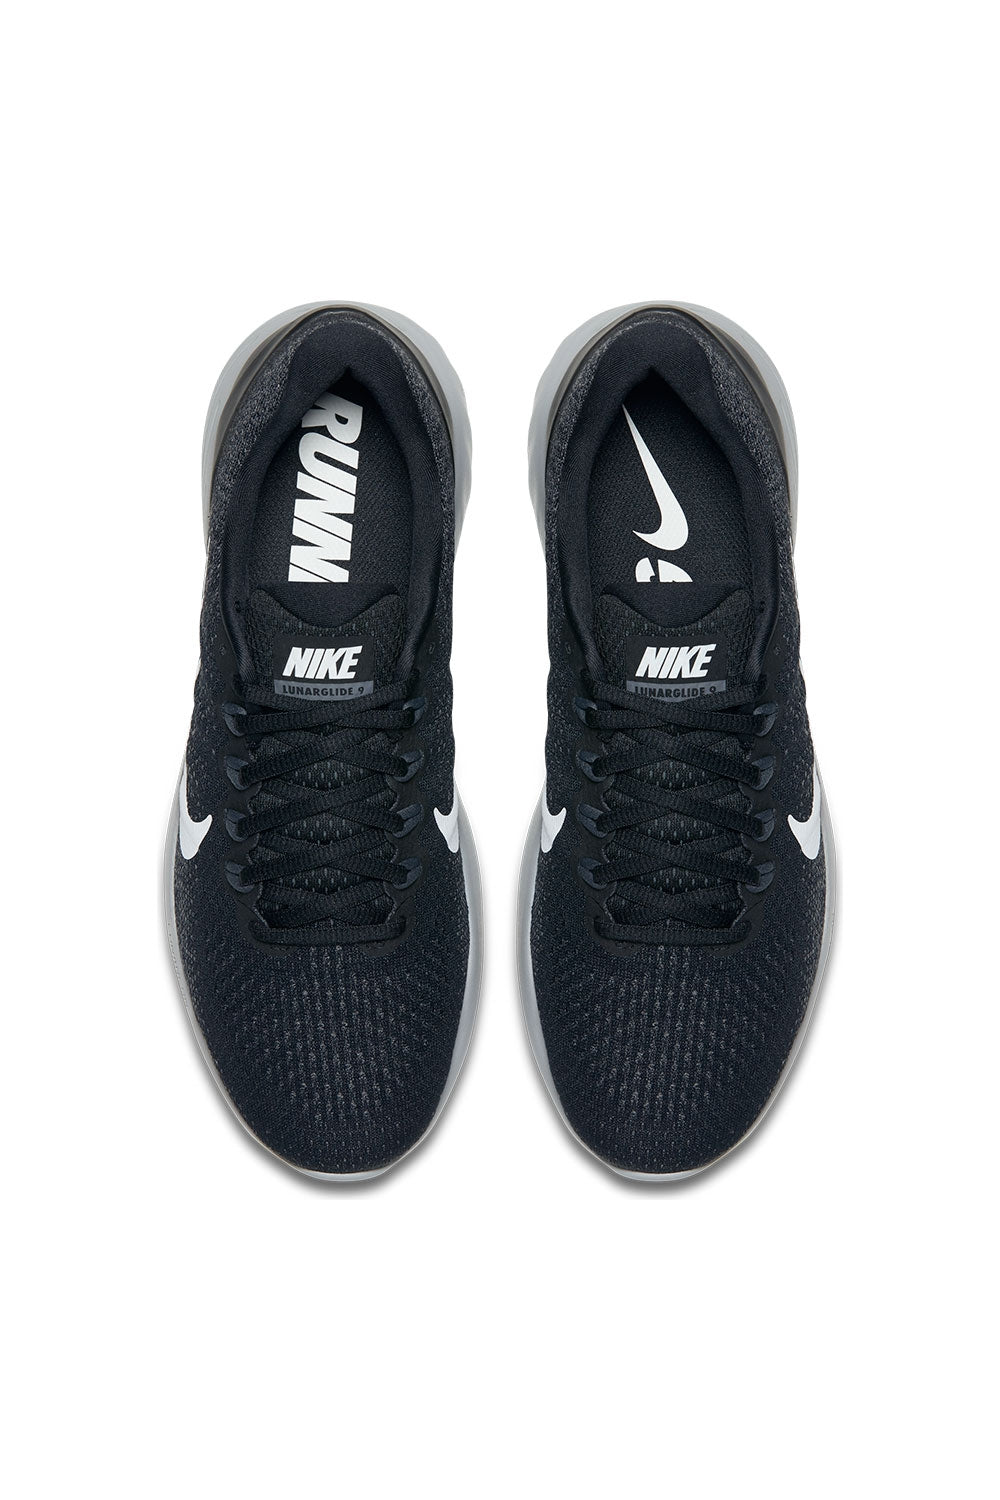 6ee2a8a7ef Men's LunarGlide 9 by Nike at Gazelle Sports